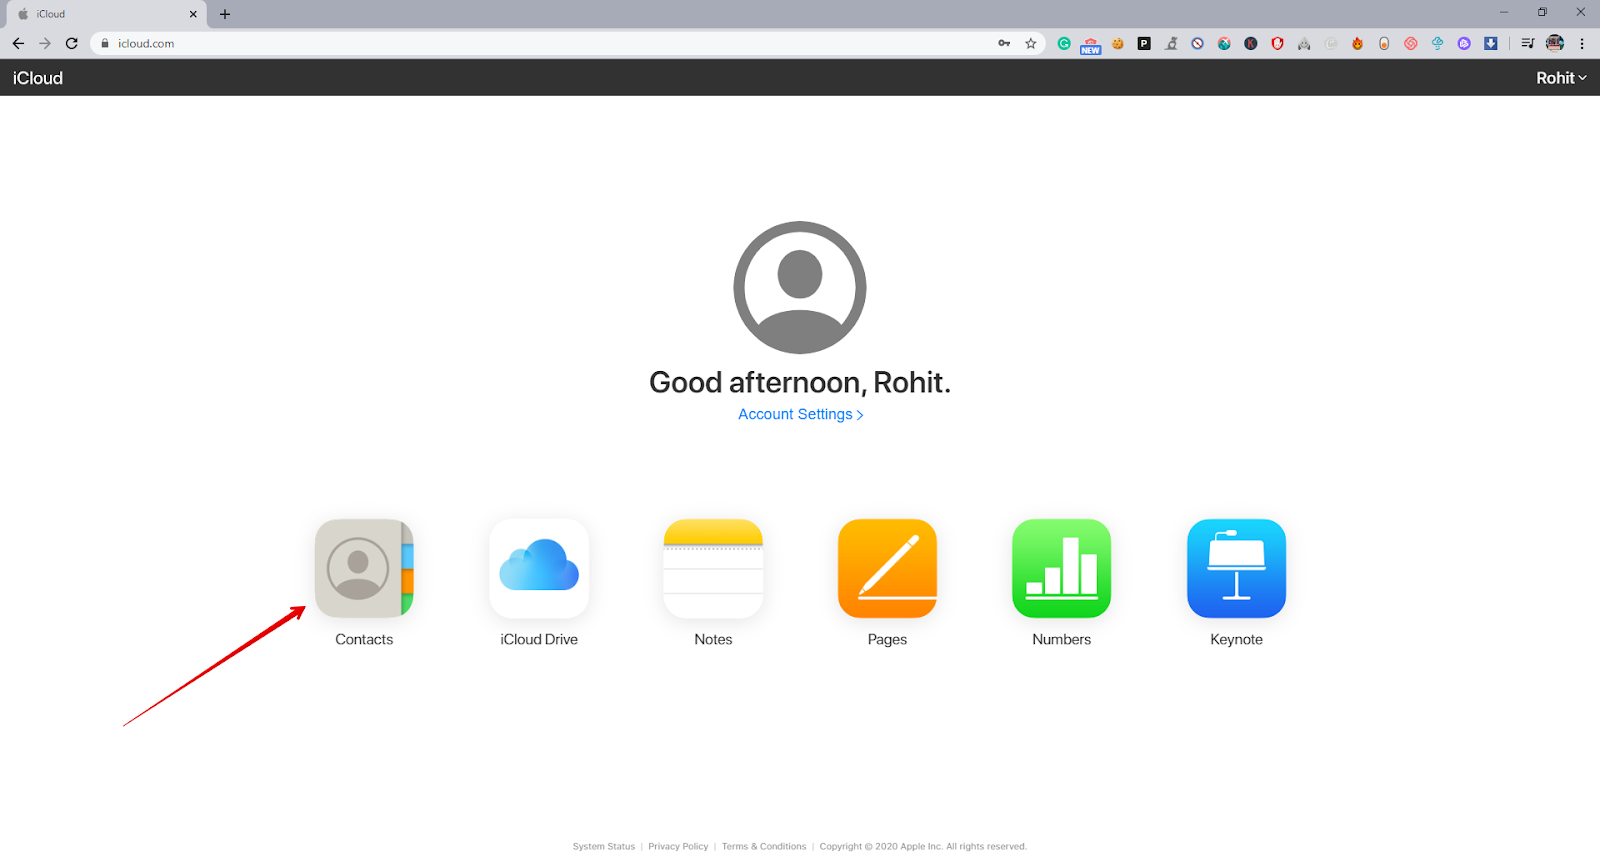 Contacts on iCloud